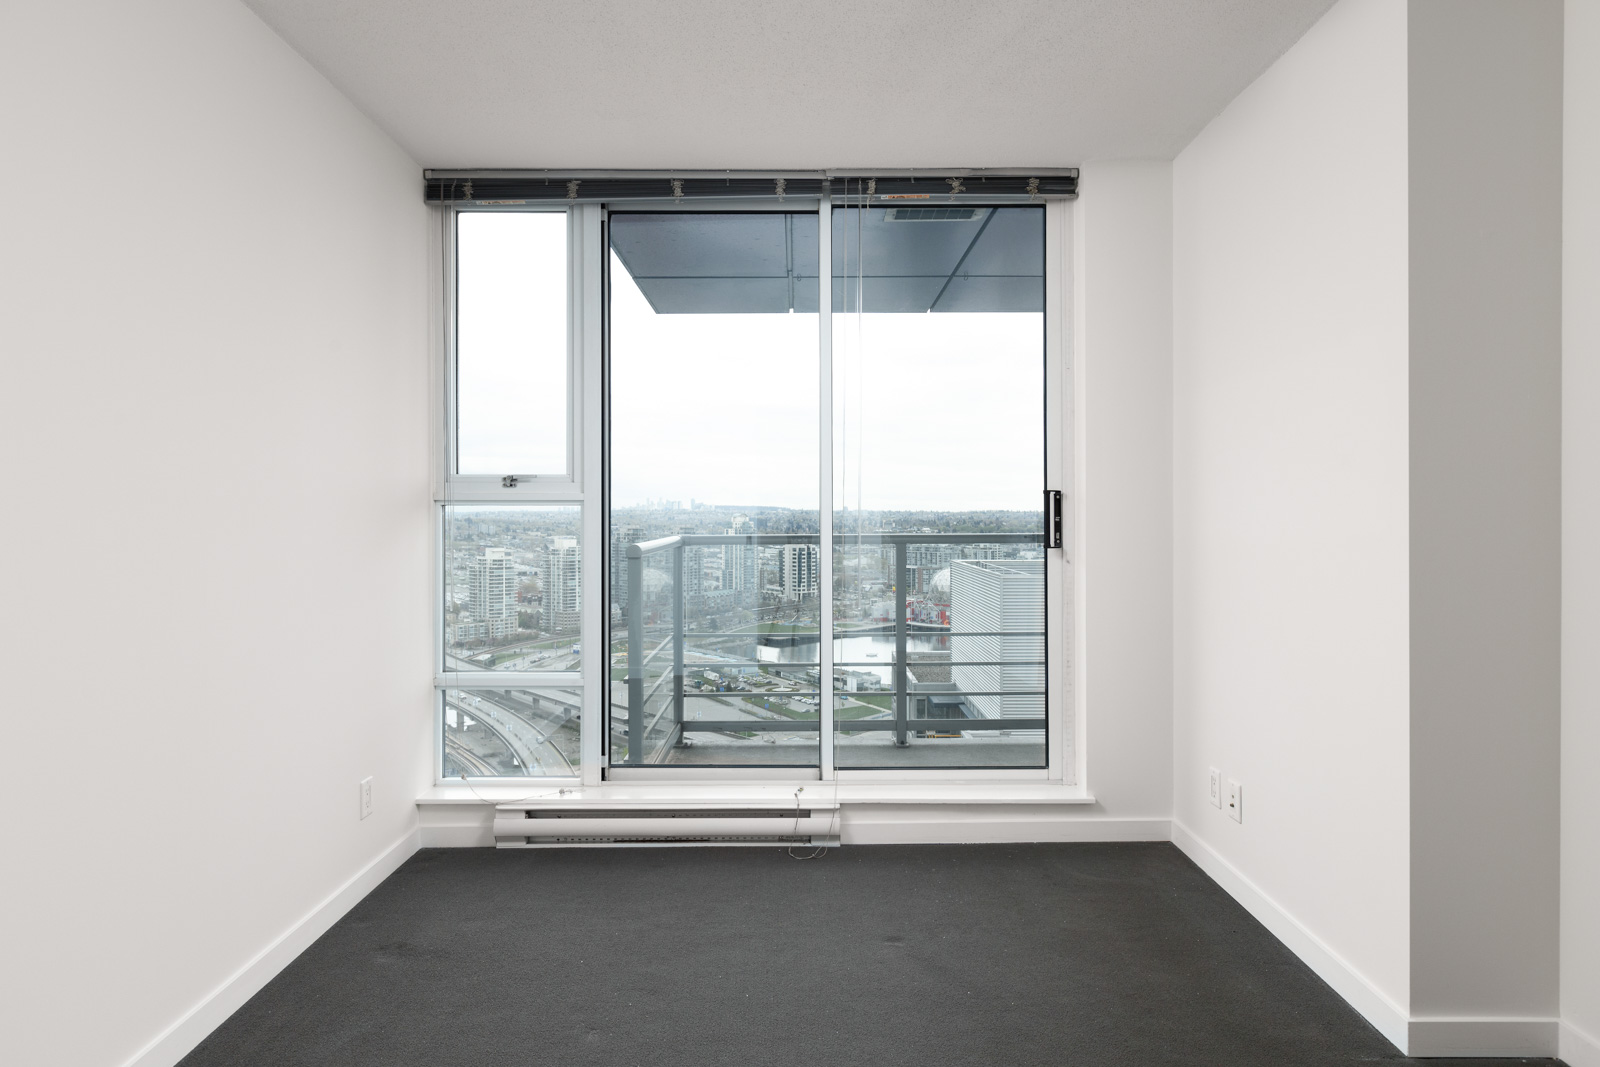 Bedroom with access to private balcony of Downtown Vancouver rental condo.